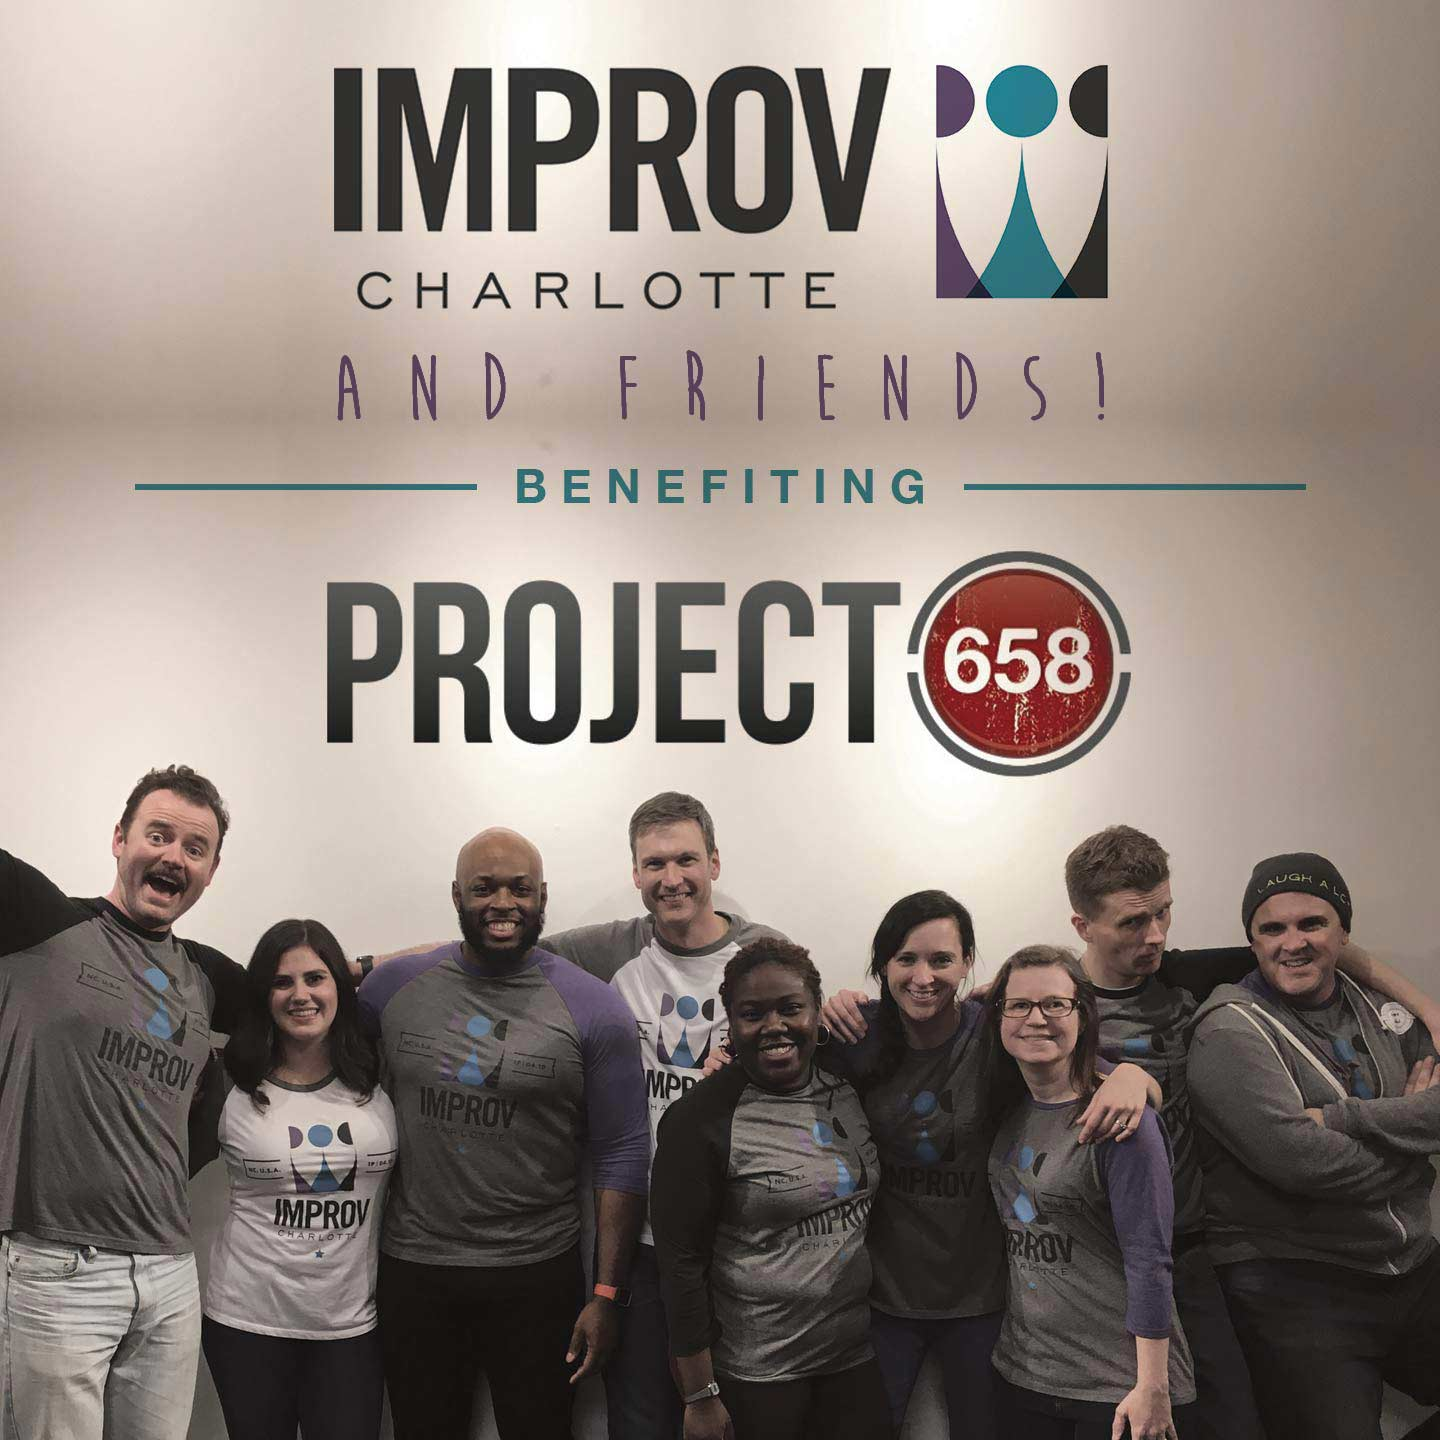 A Night of Improv & Stand Up Comedy to Benefit Project 658